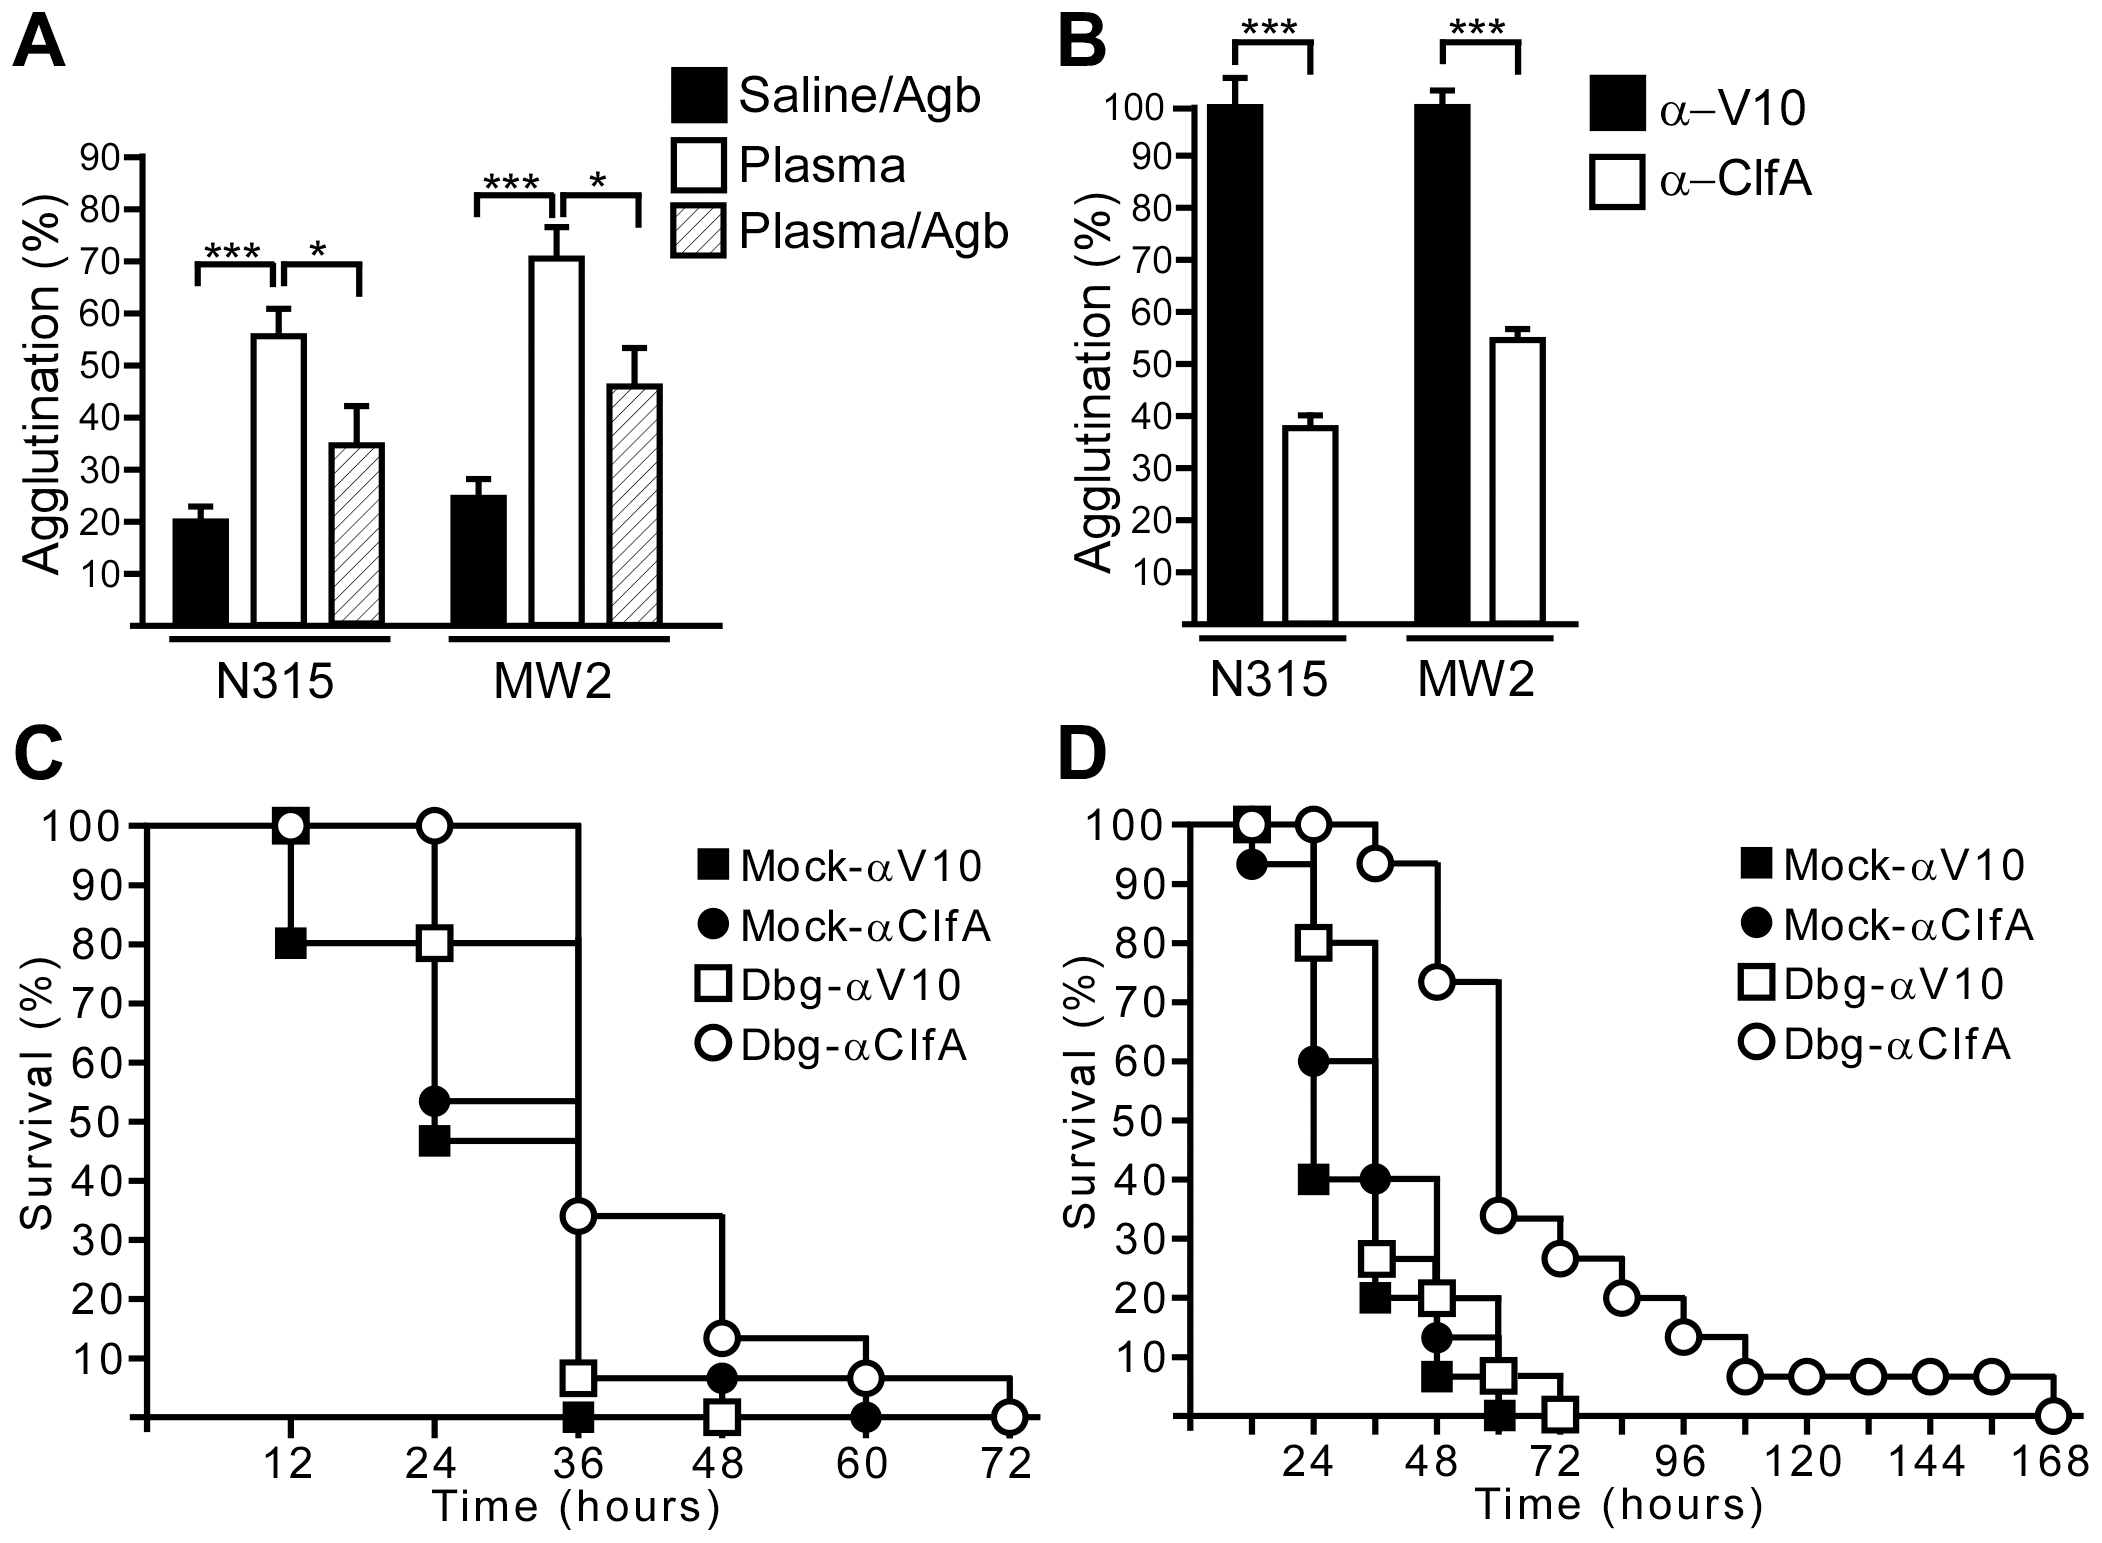 Direct thrombin inhibitors and ClfA-specific antibodies increase the time-to-death of MRSA sepsis in mice.